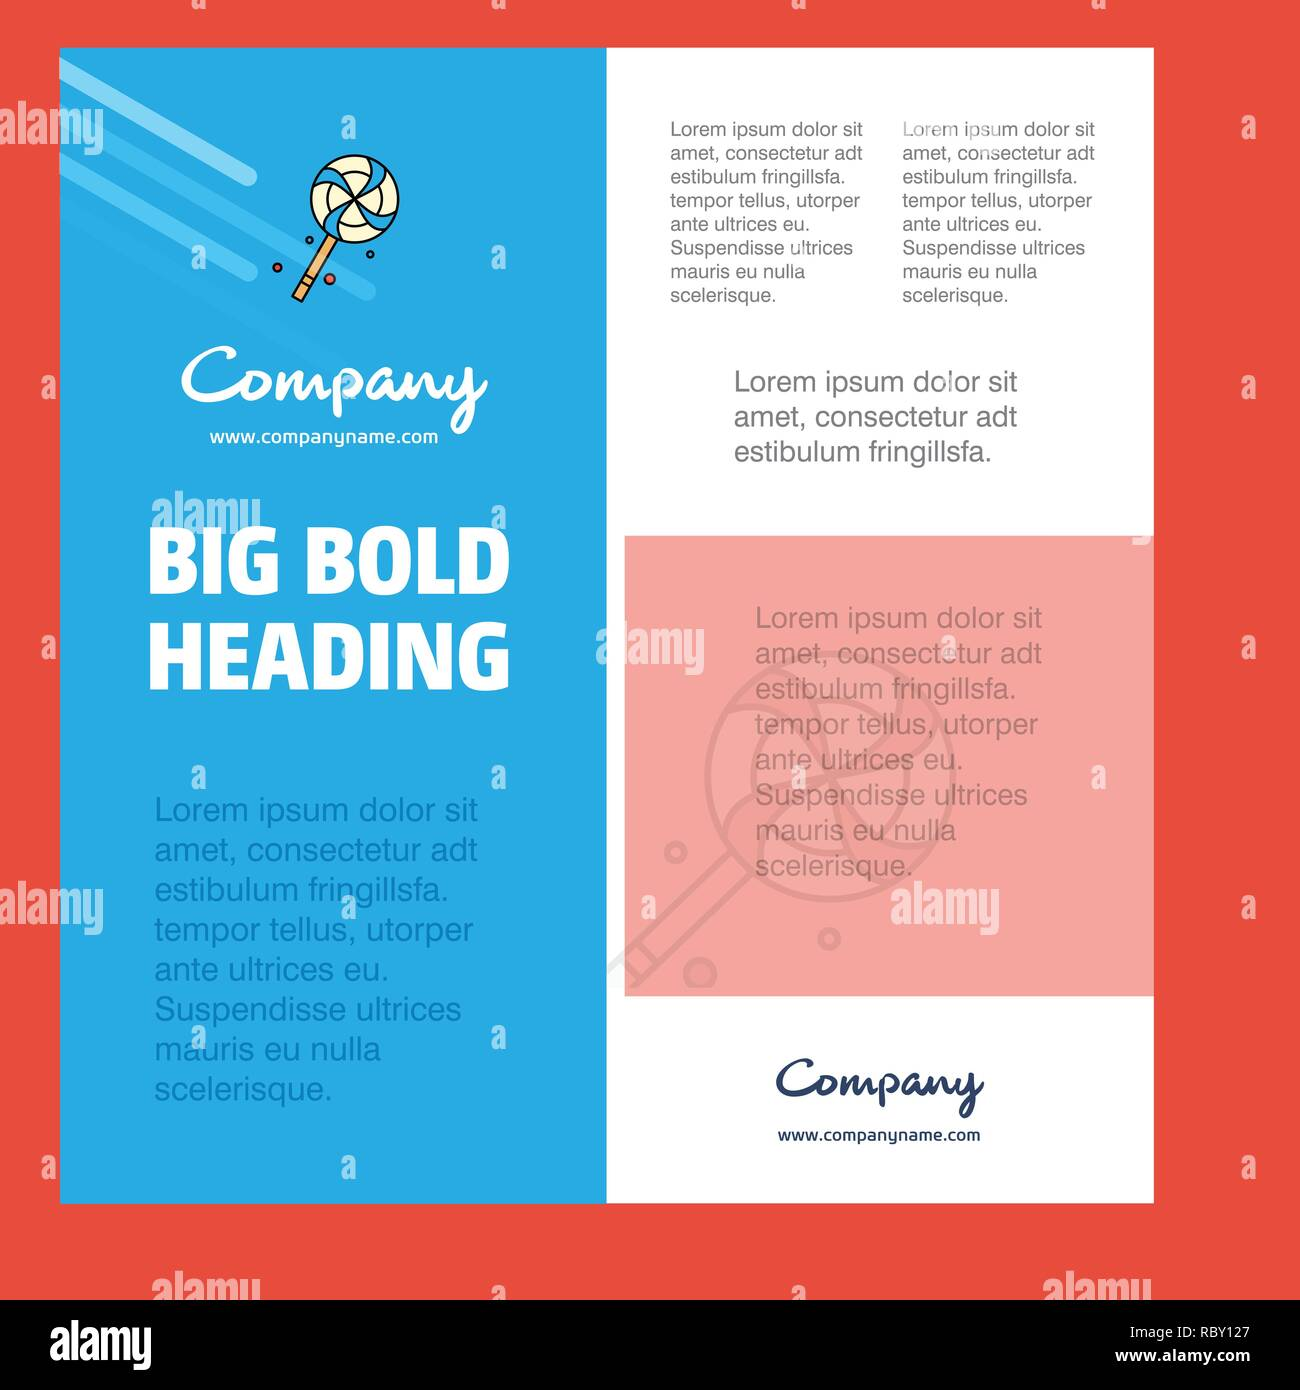 Lollypop Business Company Poster Template. with place for text and images. vector background - Stock Vector